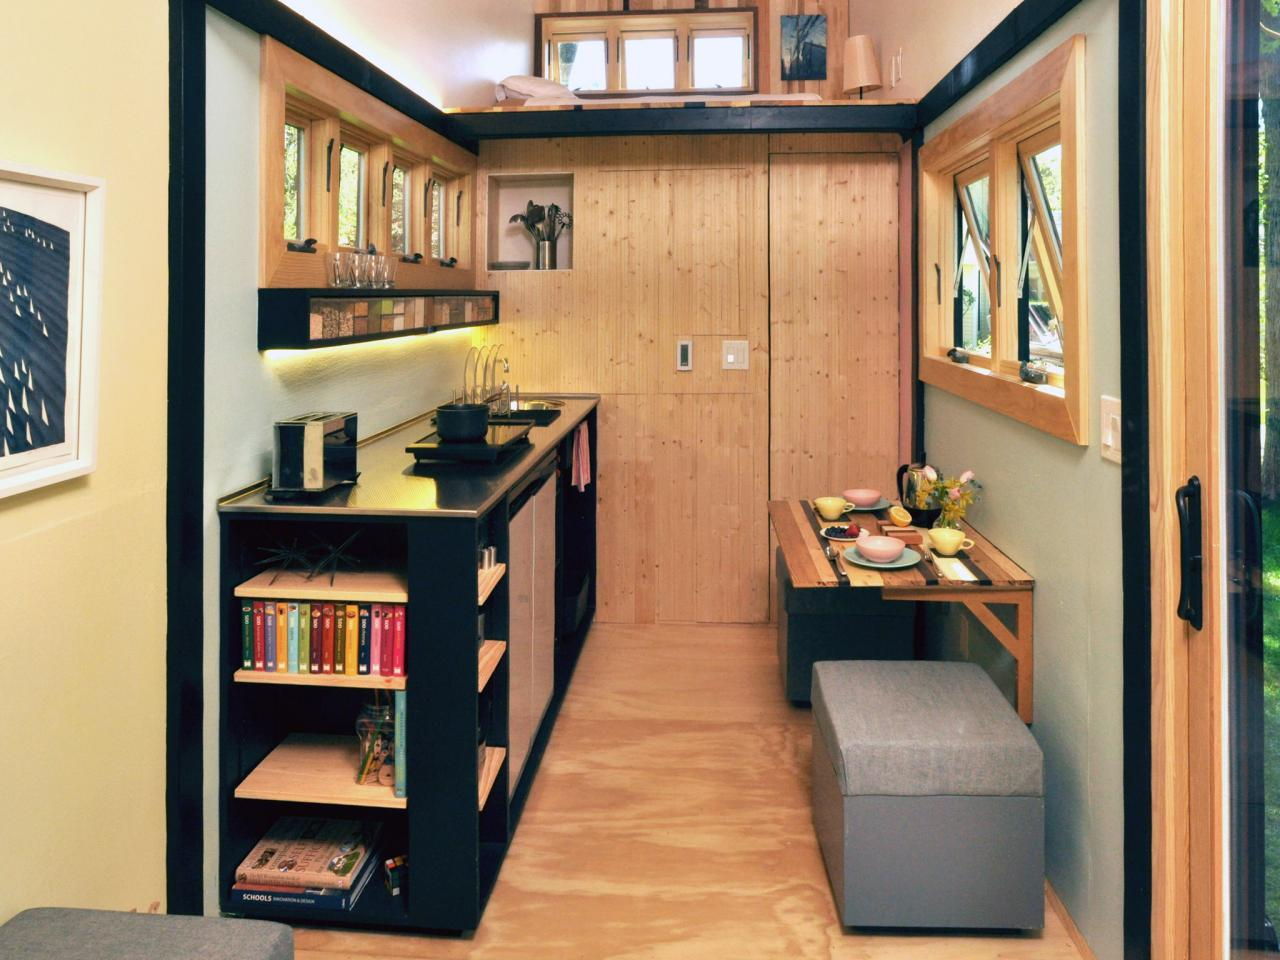 Sensational 6 Smart Storage Ideas From Tiny House Dwellers Hgtv Largest Home Design Picture Inspirations Pitcheantrous